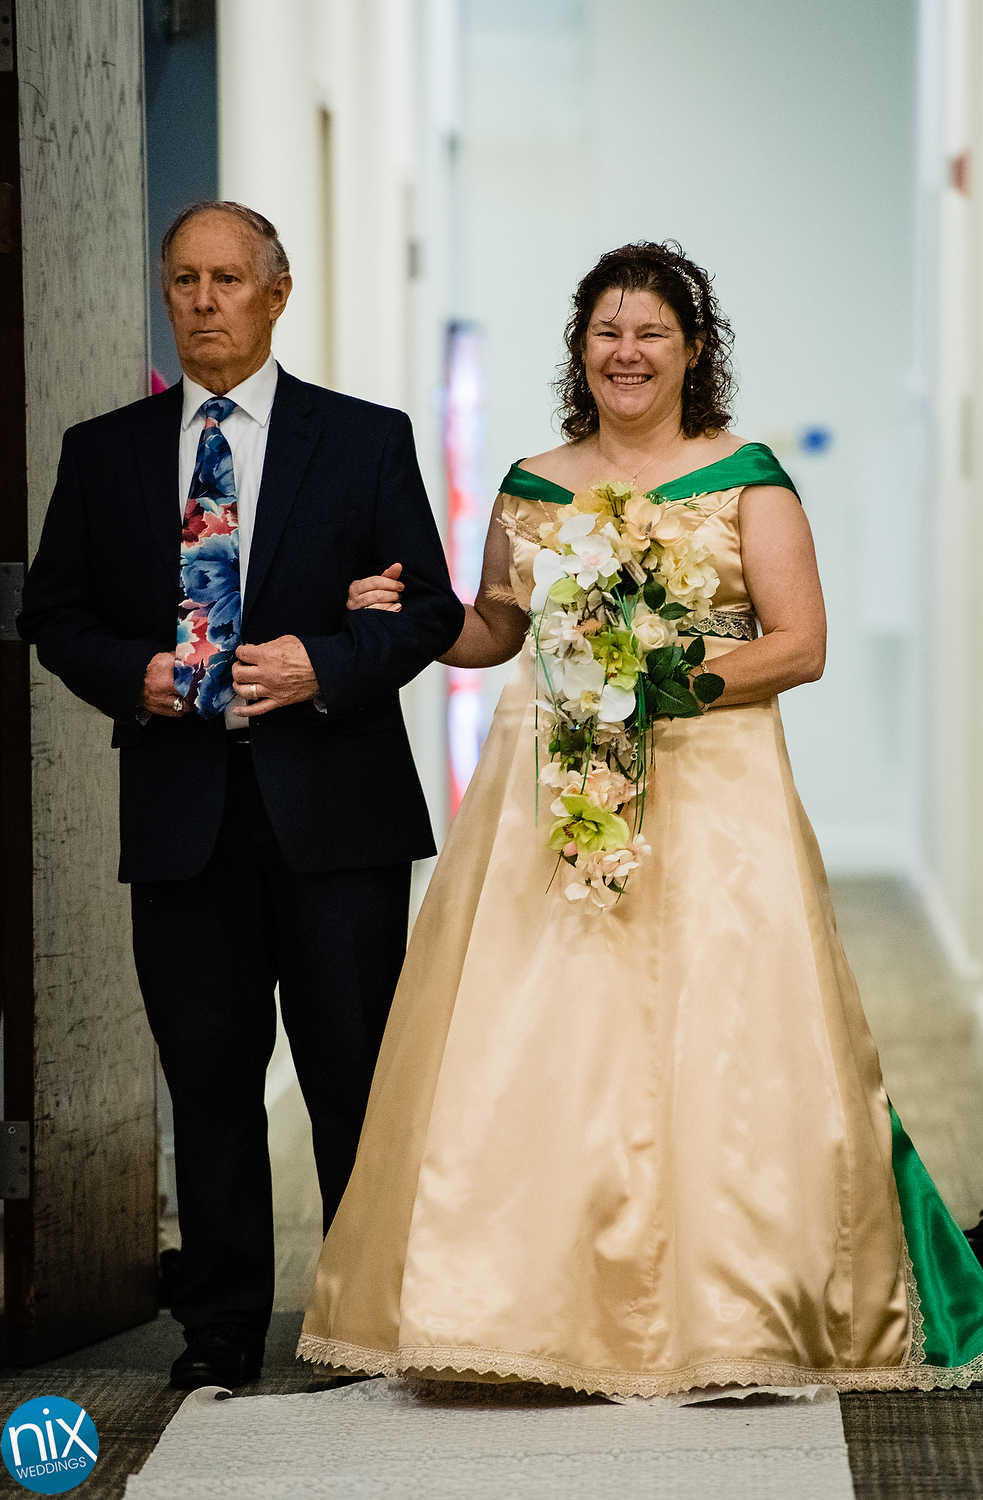 Katie and Terry's Wedding at Charles Mack Center on Saturday, June 22, 2019.